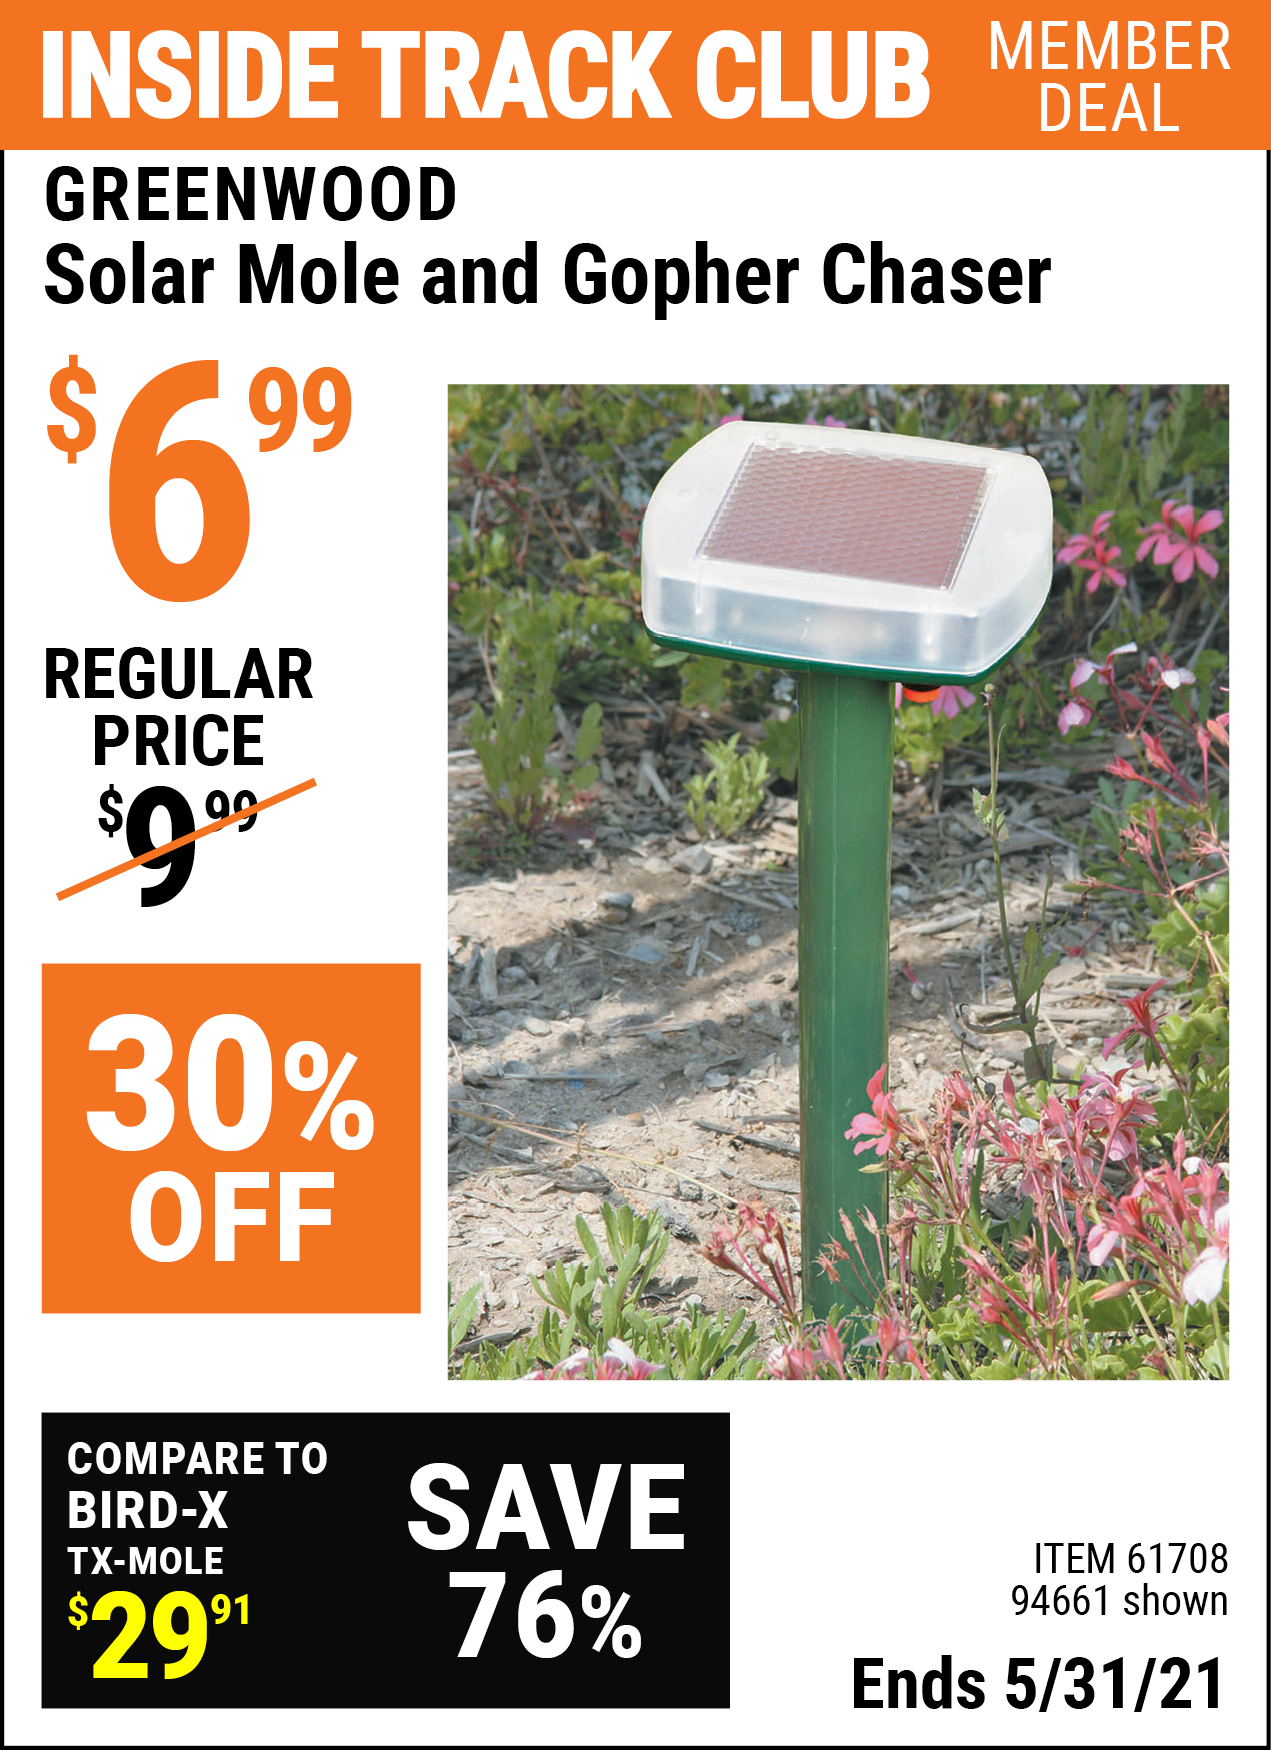 Inside Track Club members can buy the GREENWOOD Solar Mole And Gopher Chaser (Item 94661/61708) for $6.99, valid through 5/31/2021.